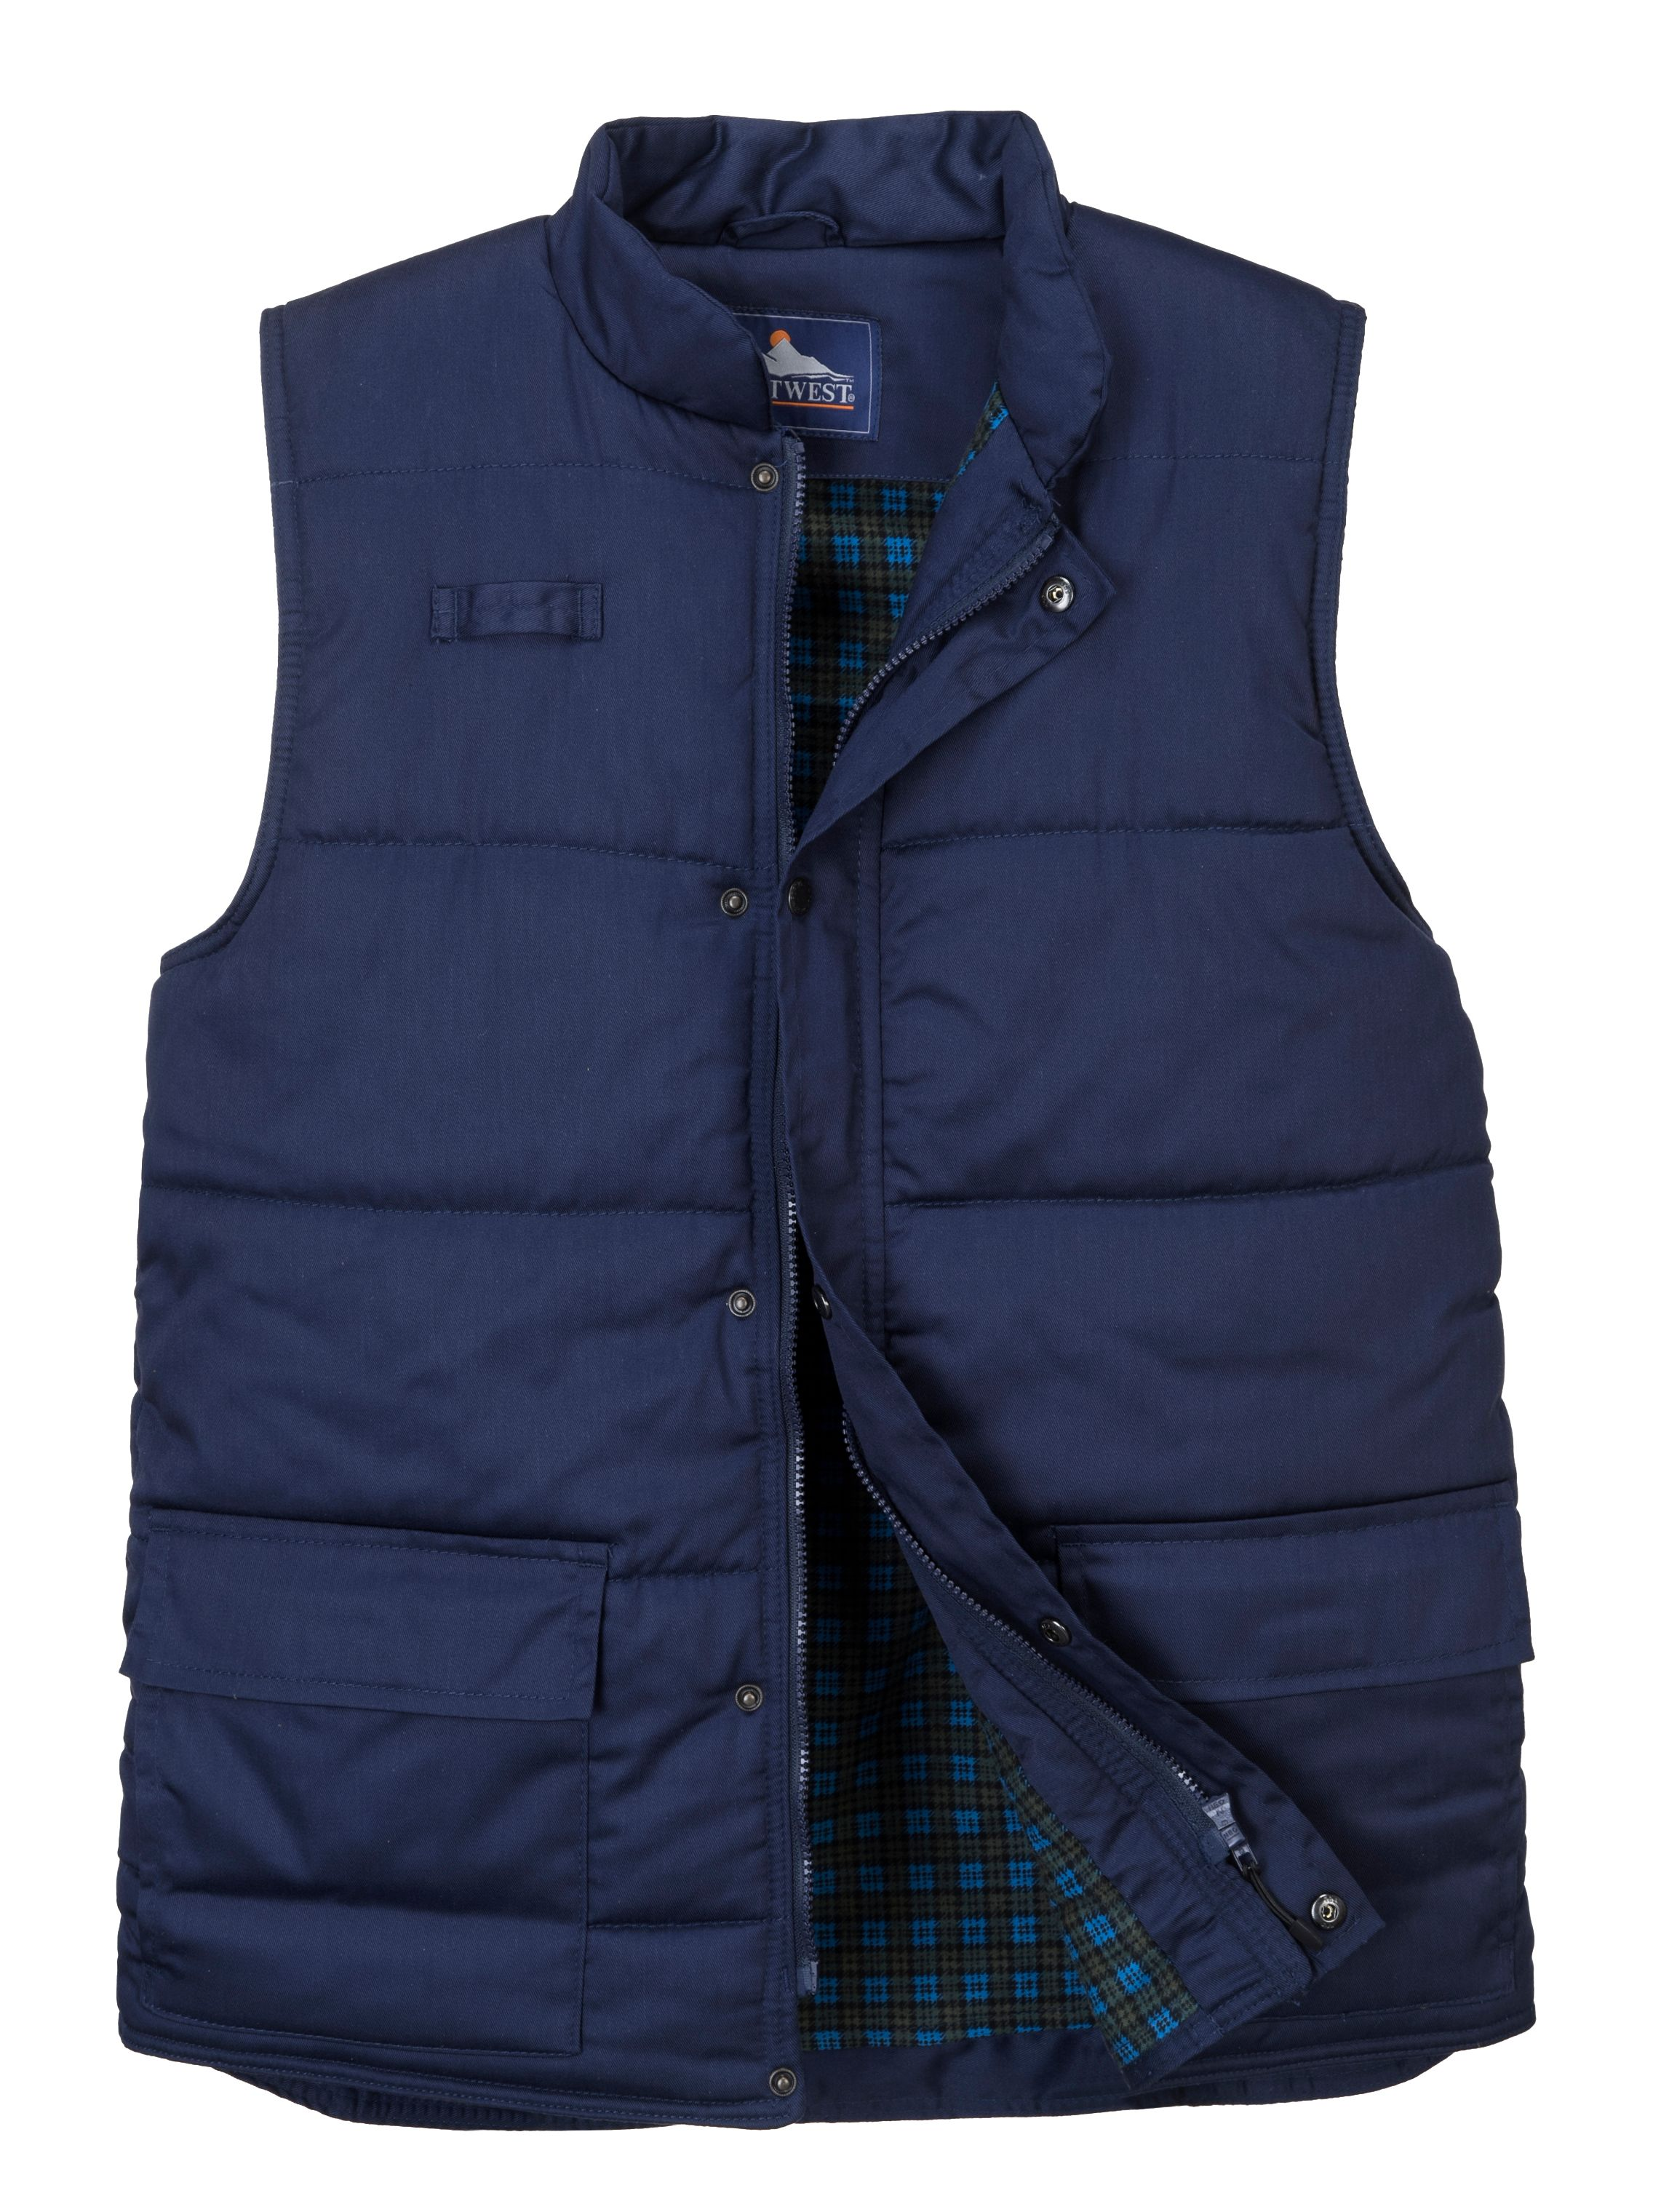 Portwest S410 Arran body warmer